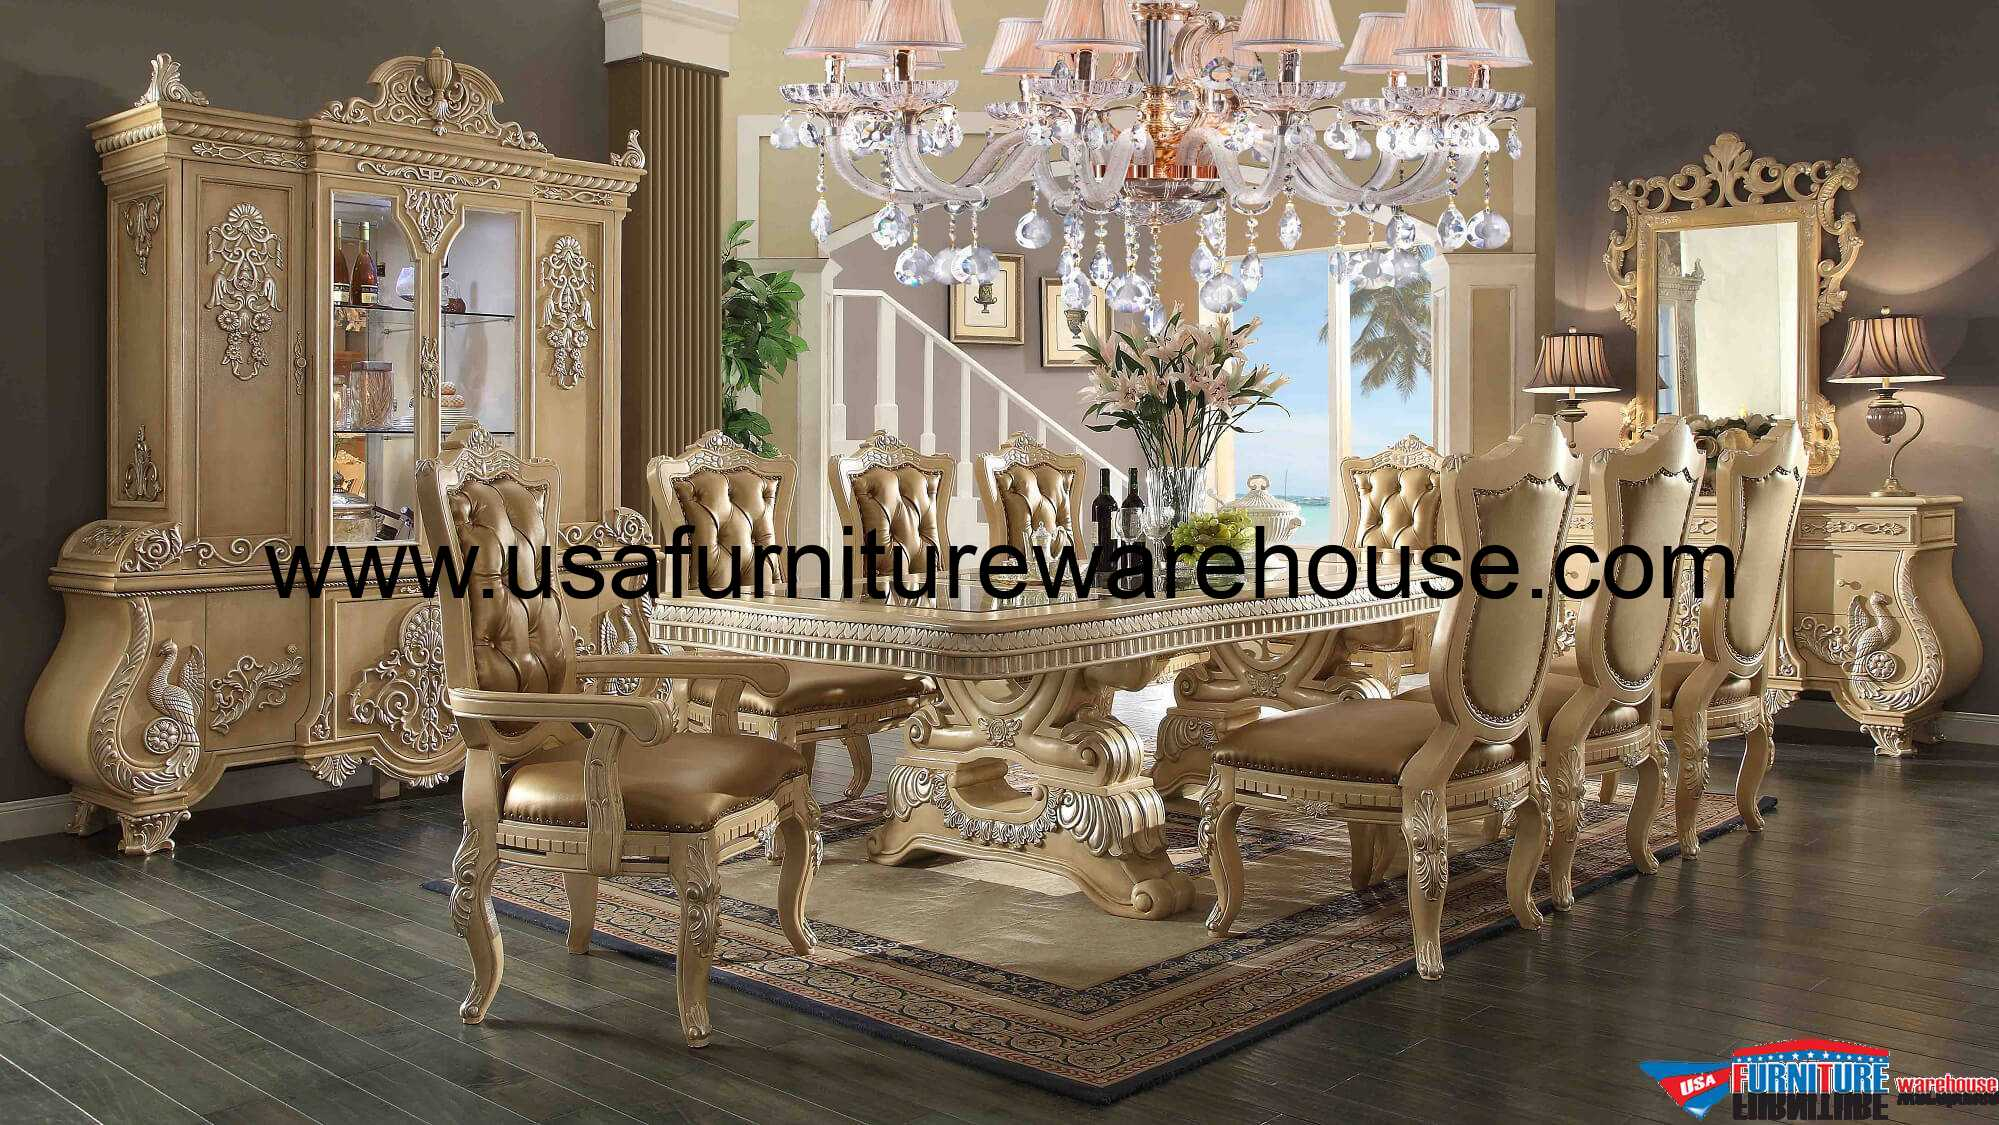 11 Piece Homey Design Victorian Palace Hd 7266 Dining Set